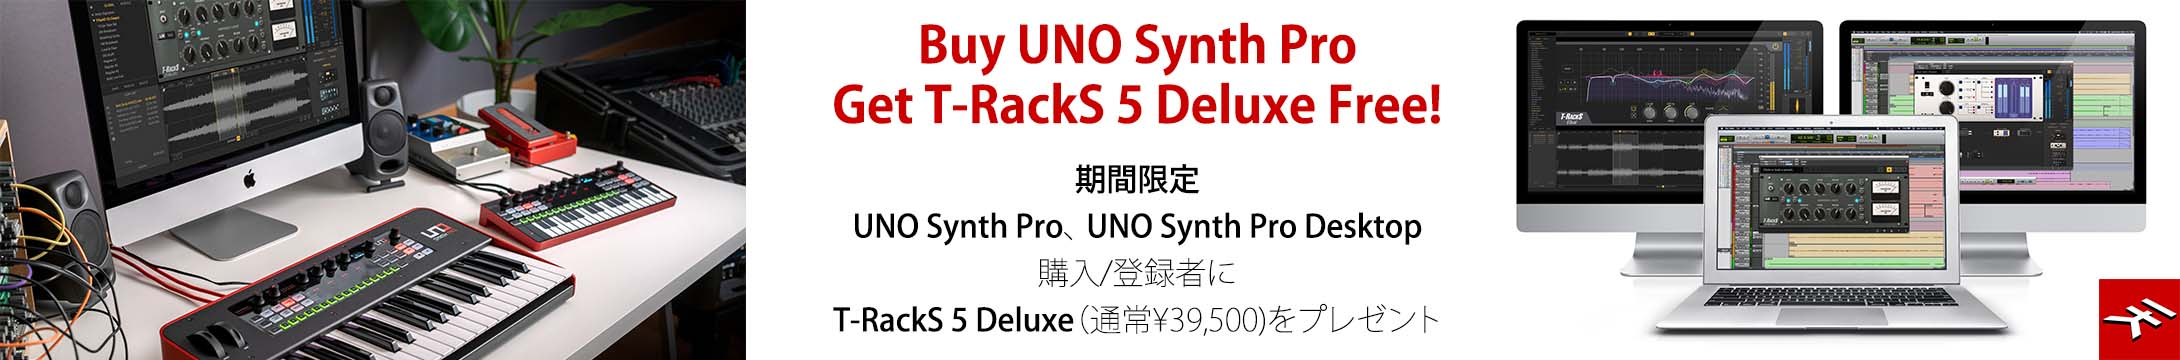 UNO-Synth-Pro-TRDX-1090x180-2@2x